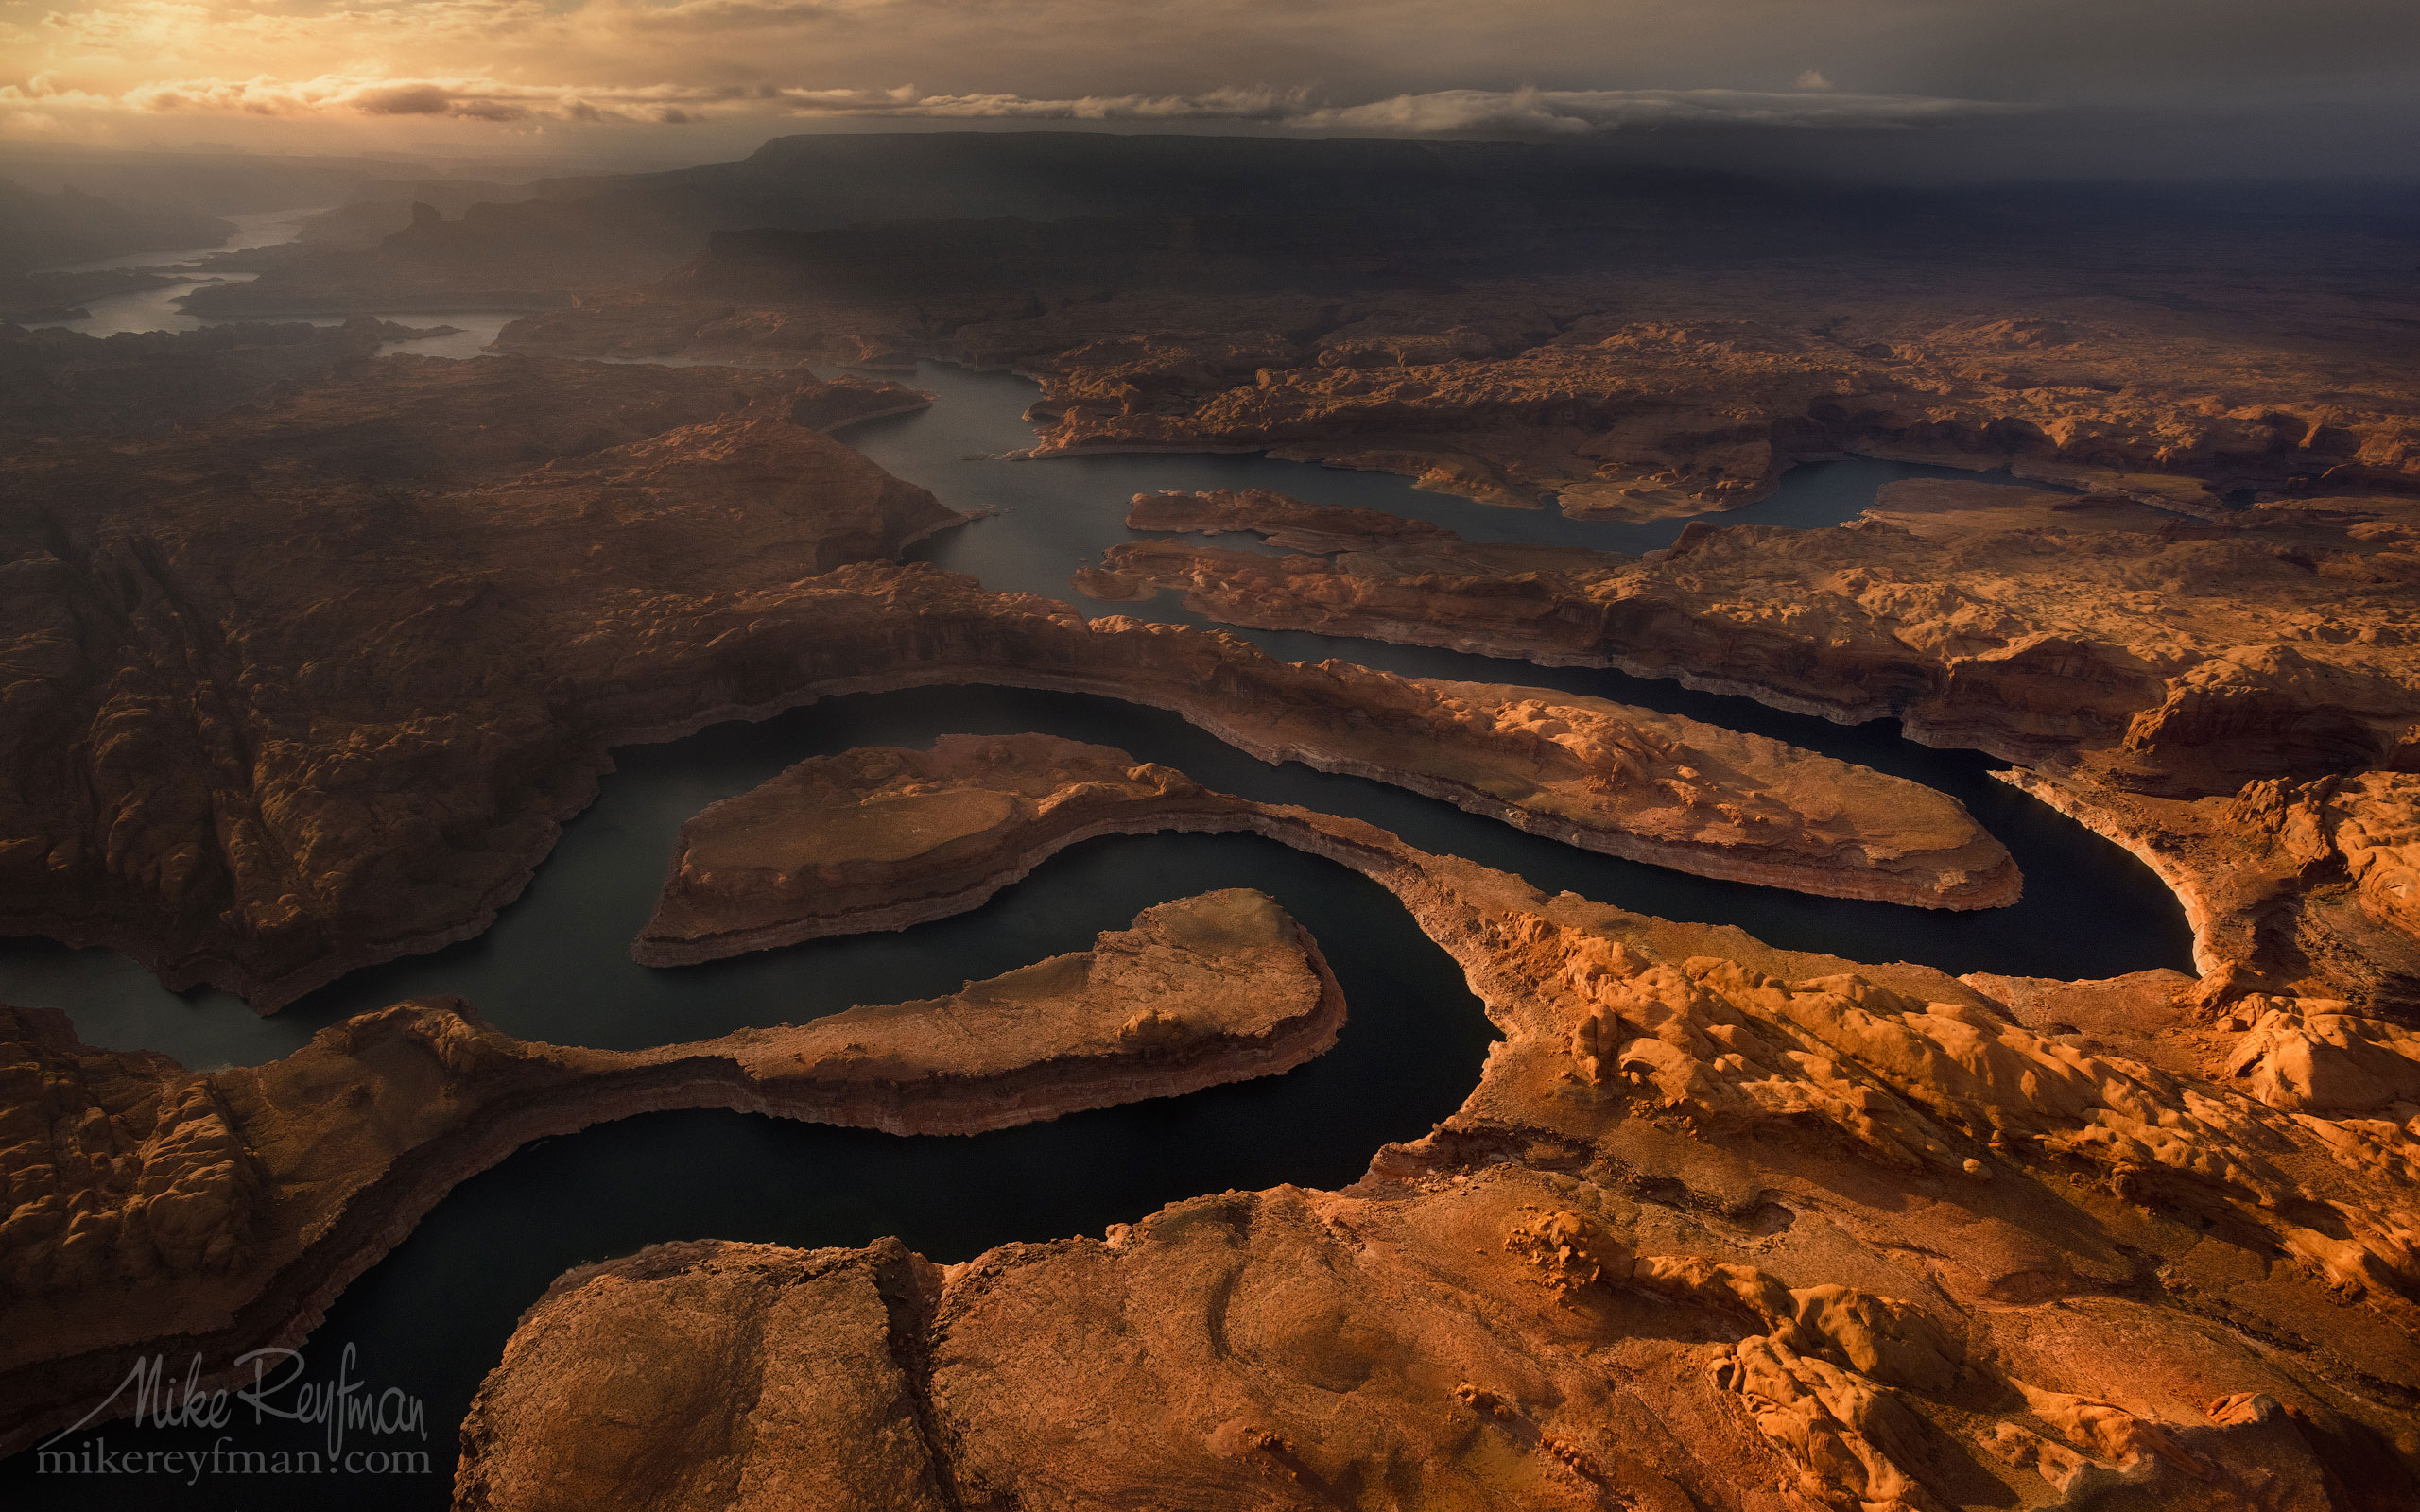 Sunset on Planet Earth. Confluence of San Juan & Colorado Rivers. Glen Canyon NRA, Lake Powell, Utah/Arizona, USA. Aerial. 002-LP3_D1C1604.jpg - Lake Powell, Glen Canyon NAR. Colorado and Sun Juan Rivers. Utah/Arizona, USA  - Mike Reyfman Photography